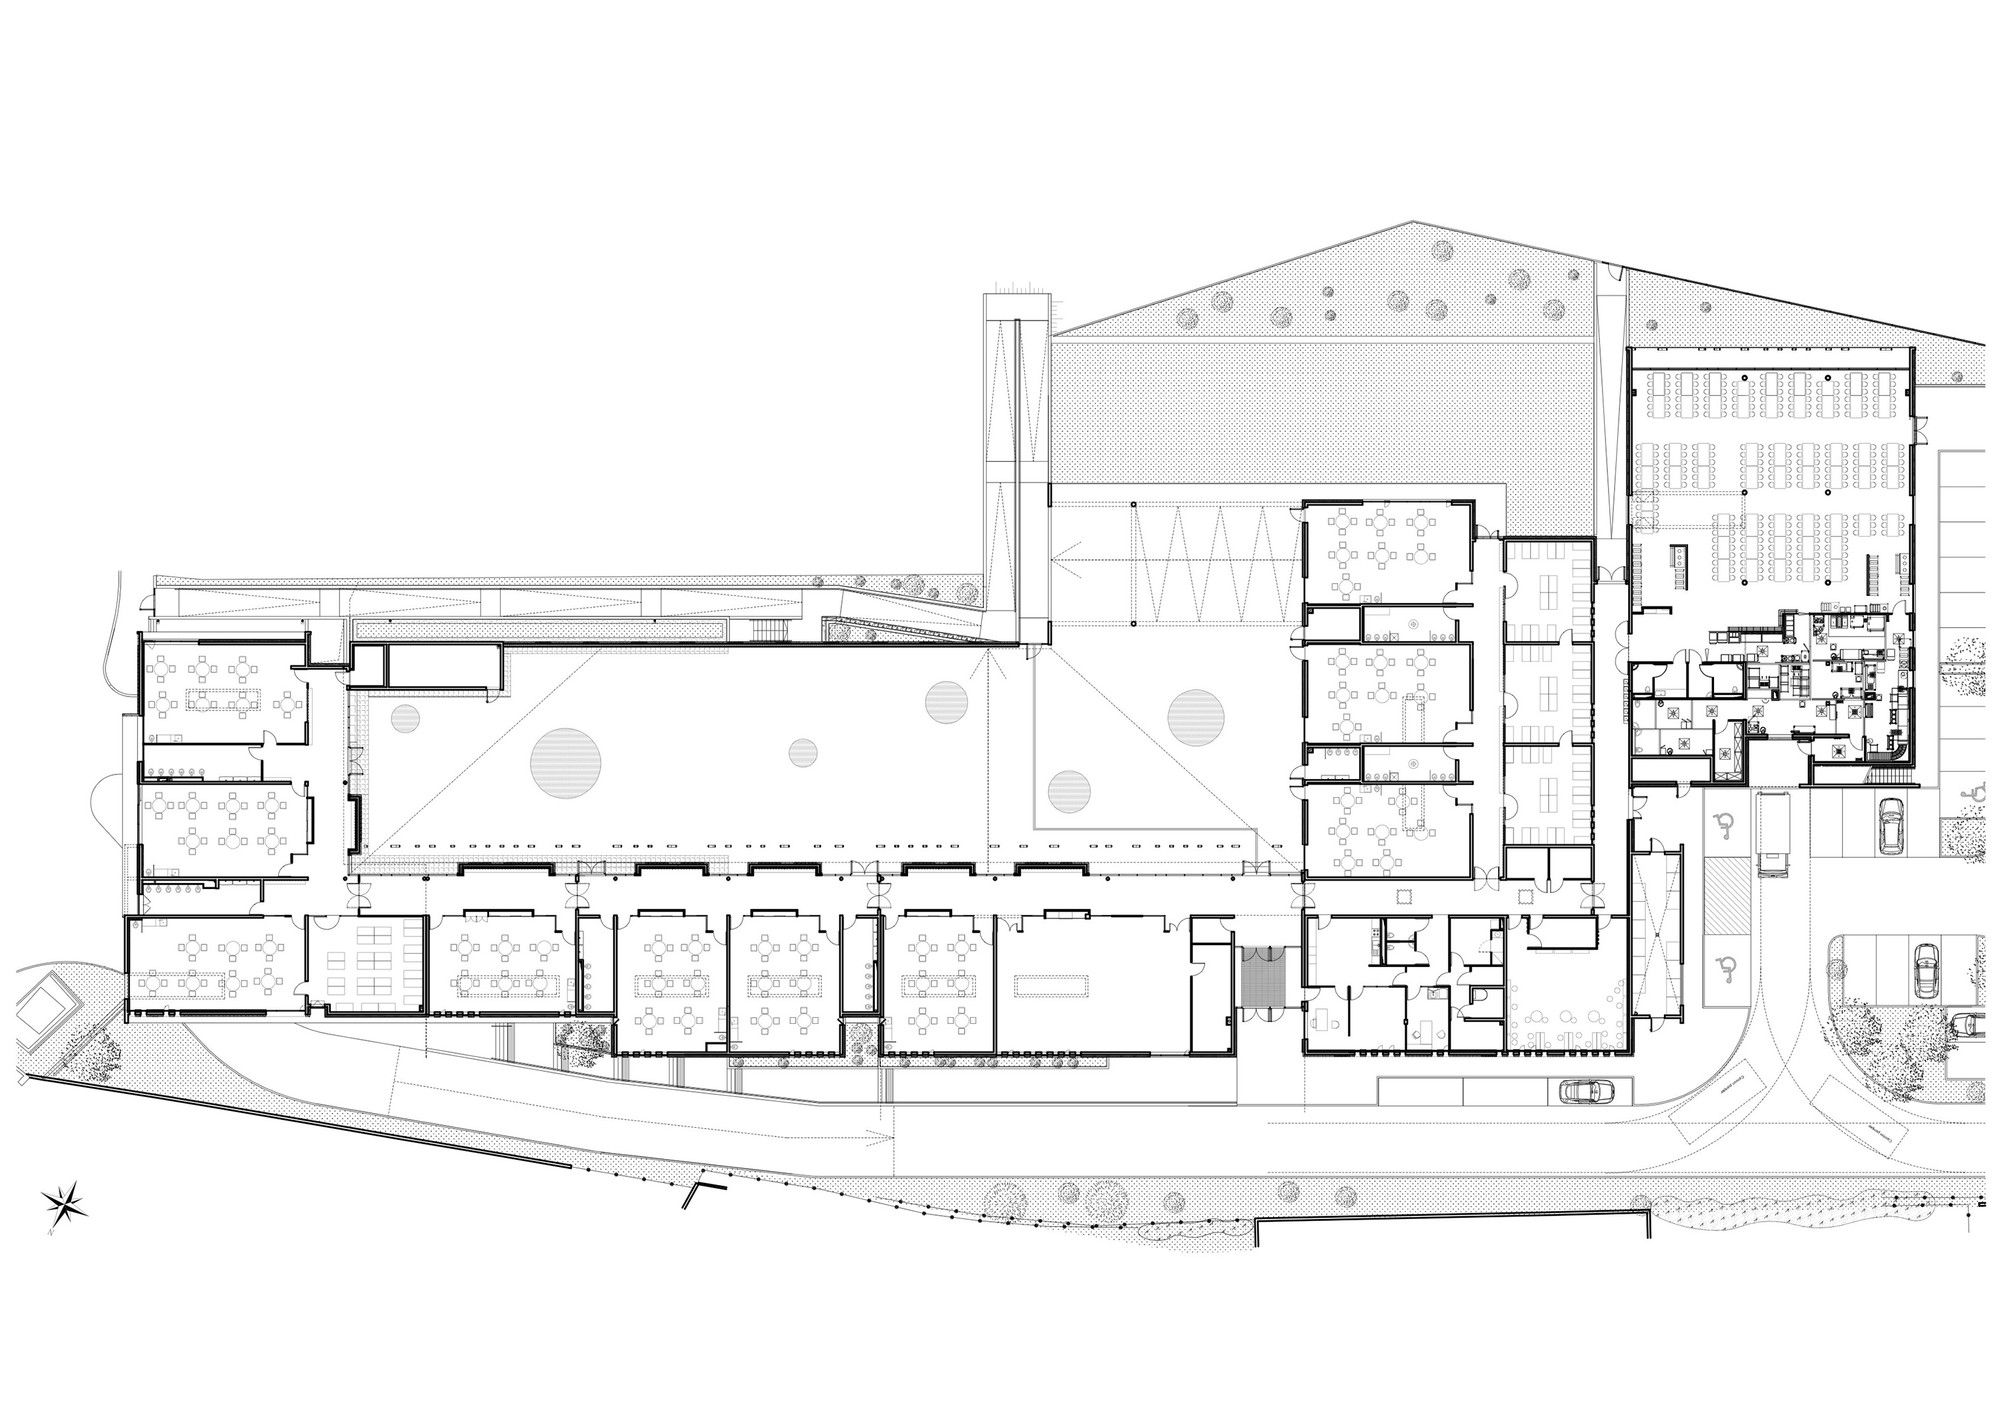 Gallery Of Nursery School Mdr 22 Nursery School School Architecture School Plan